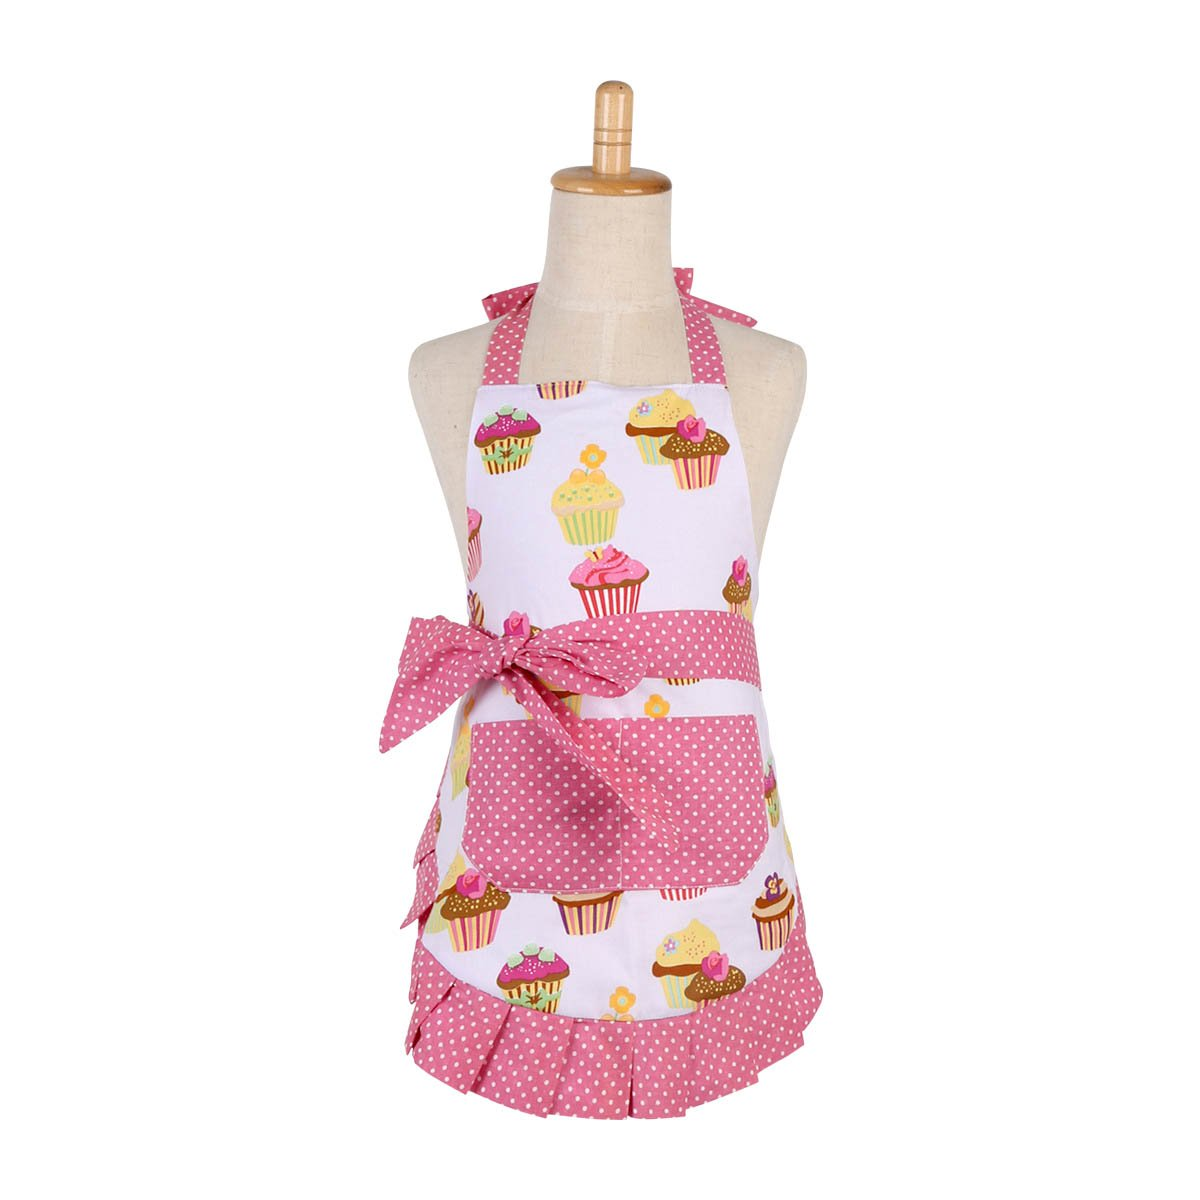 G2Plus Cotton Aprons for Kid Girls, Cupcake Pattern Apron for Children, Great Christmas Gift for Daughters Litter Girls(Kid Girl) by G2Plus